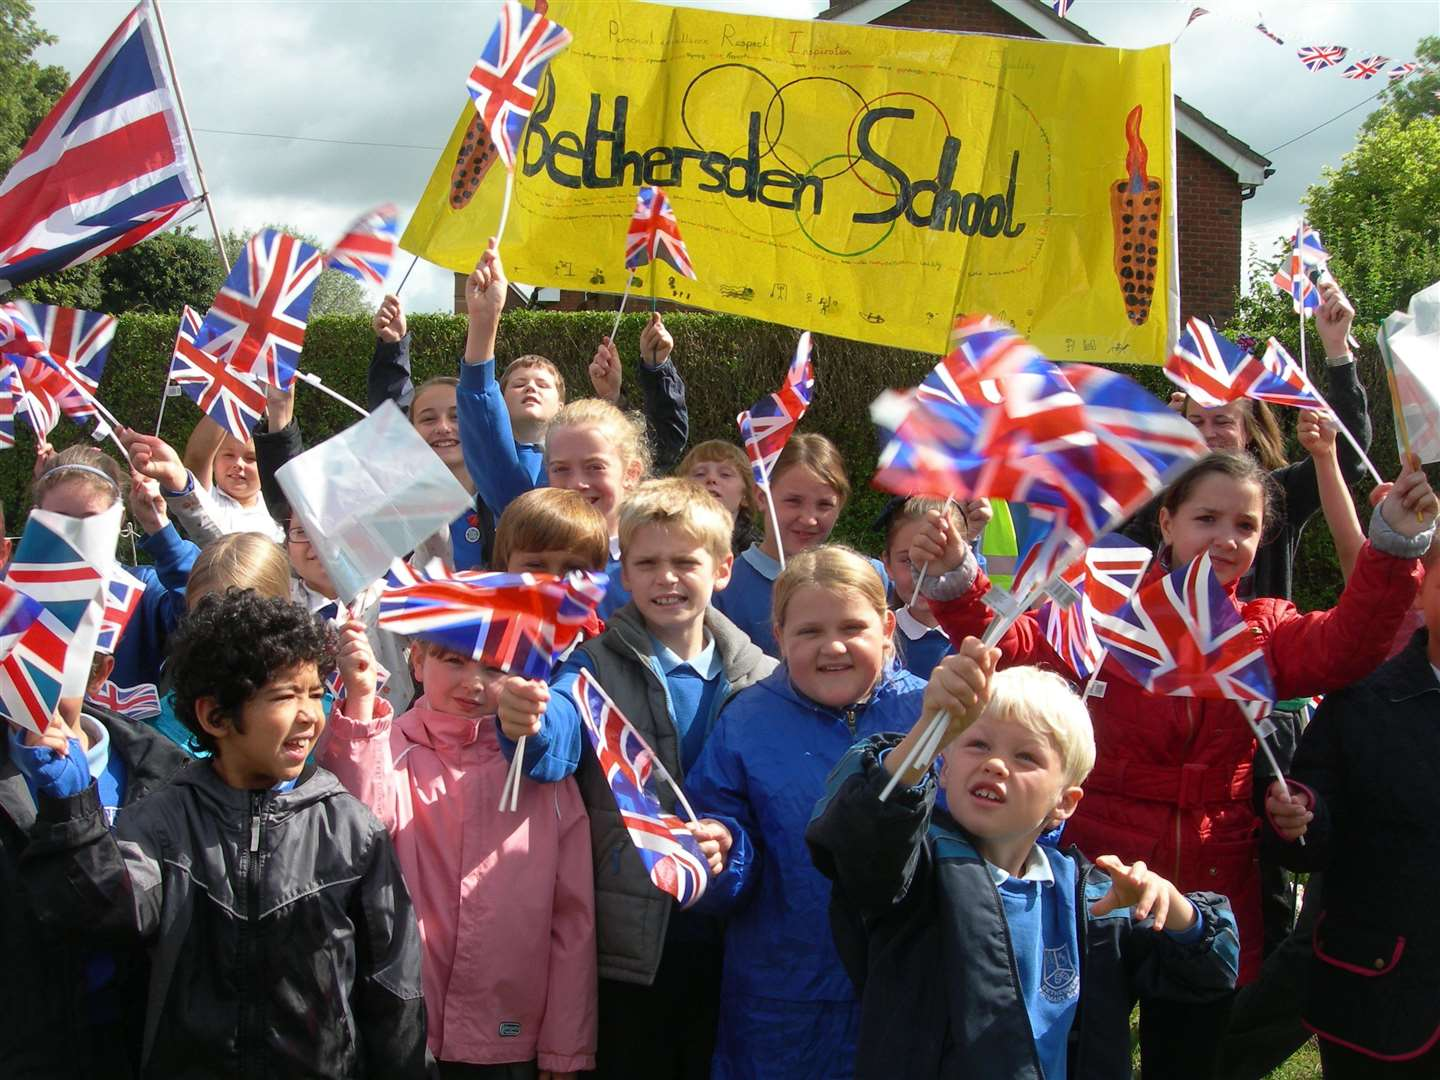 Bethersden Primary School pupils in Hamstreet for the Olympic torch relay